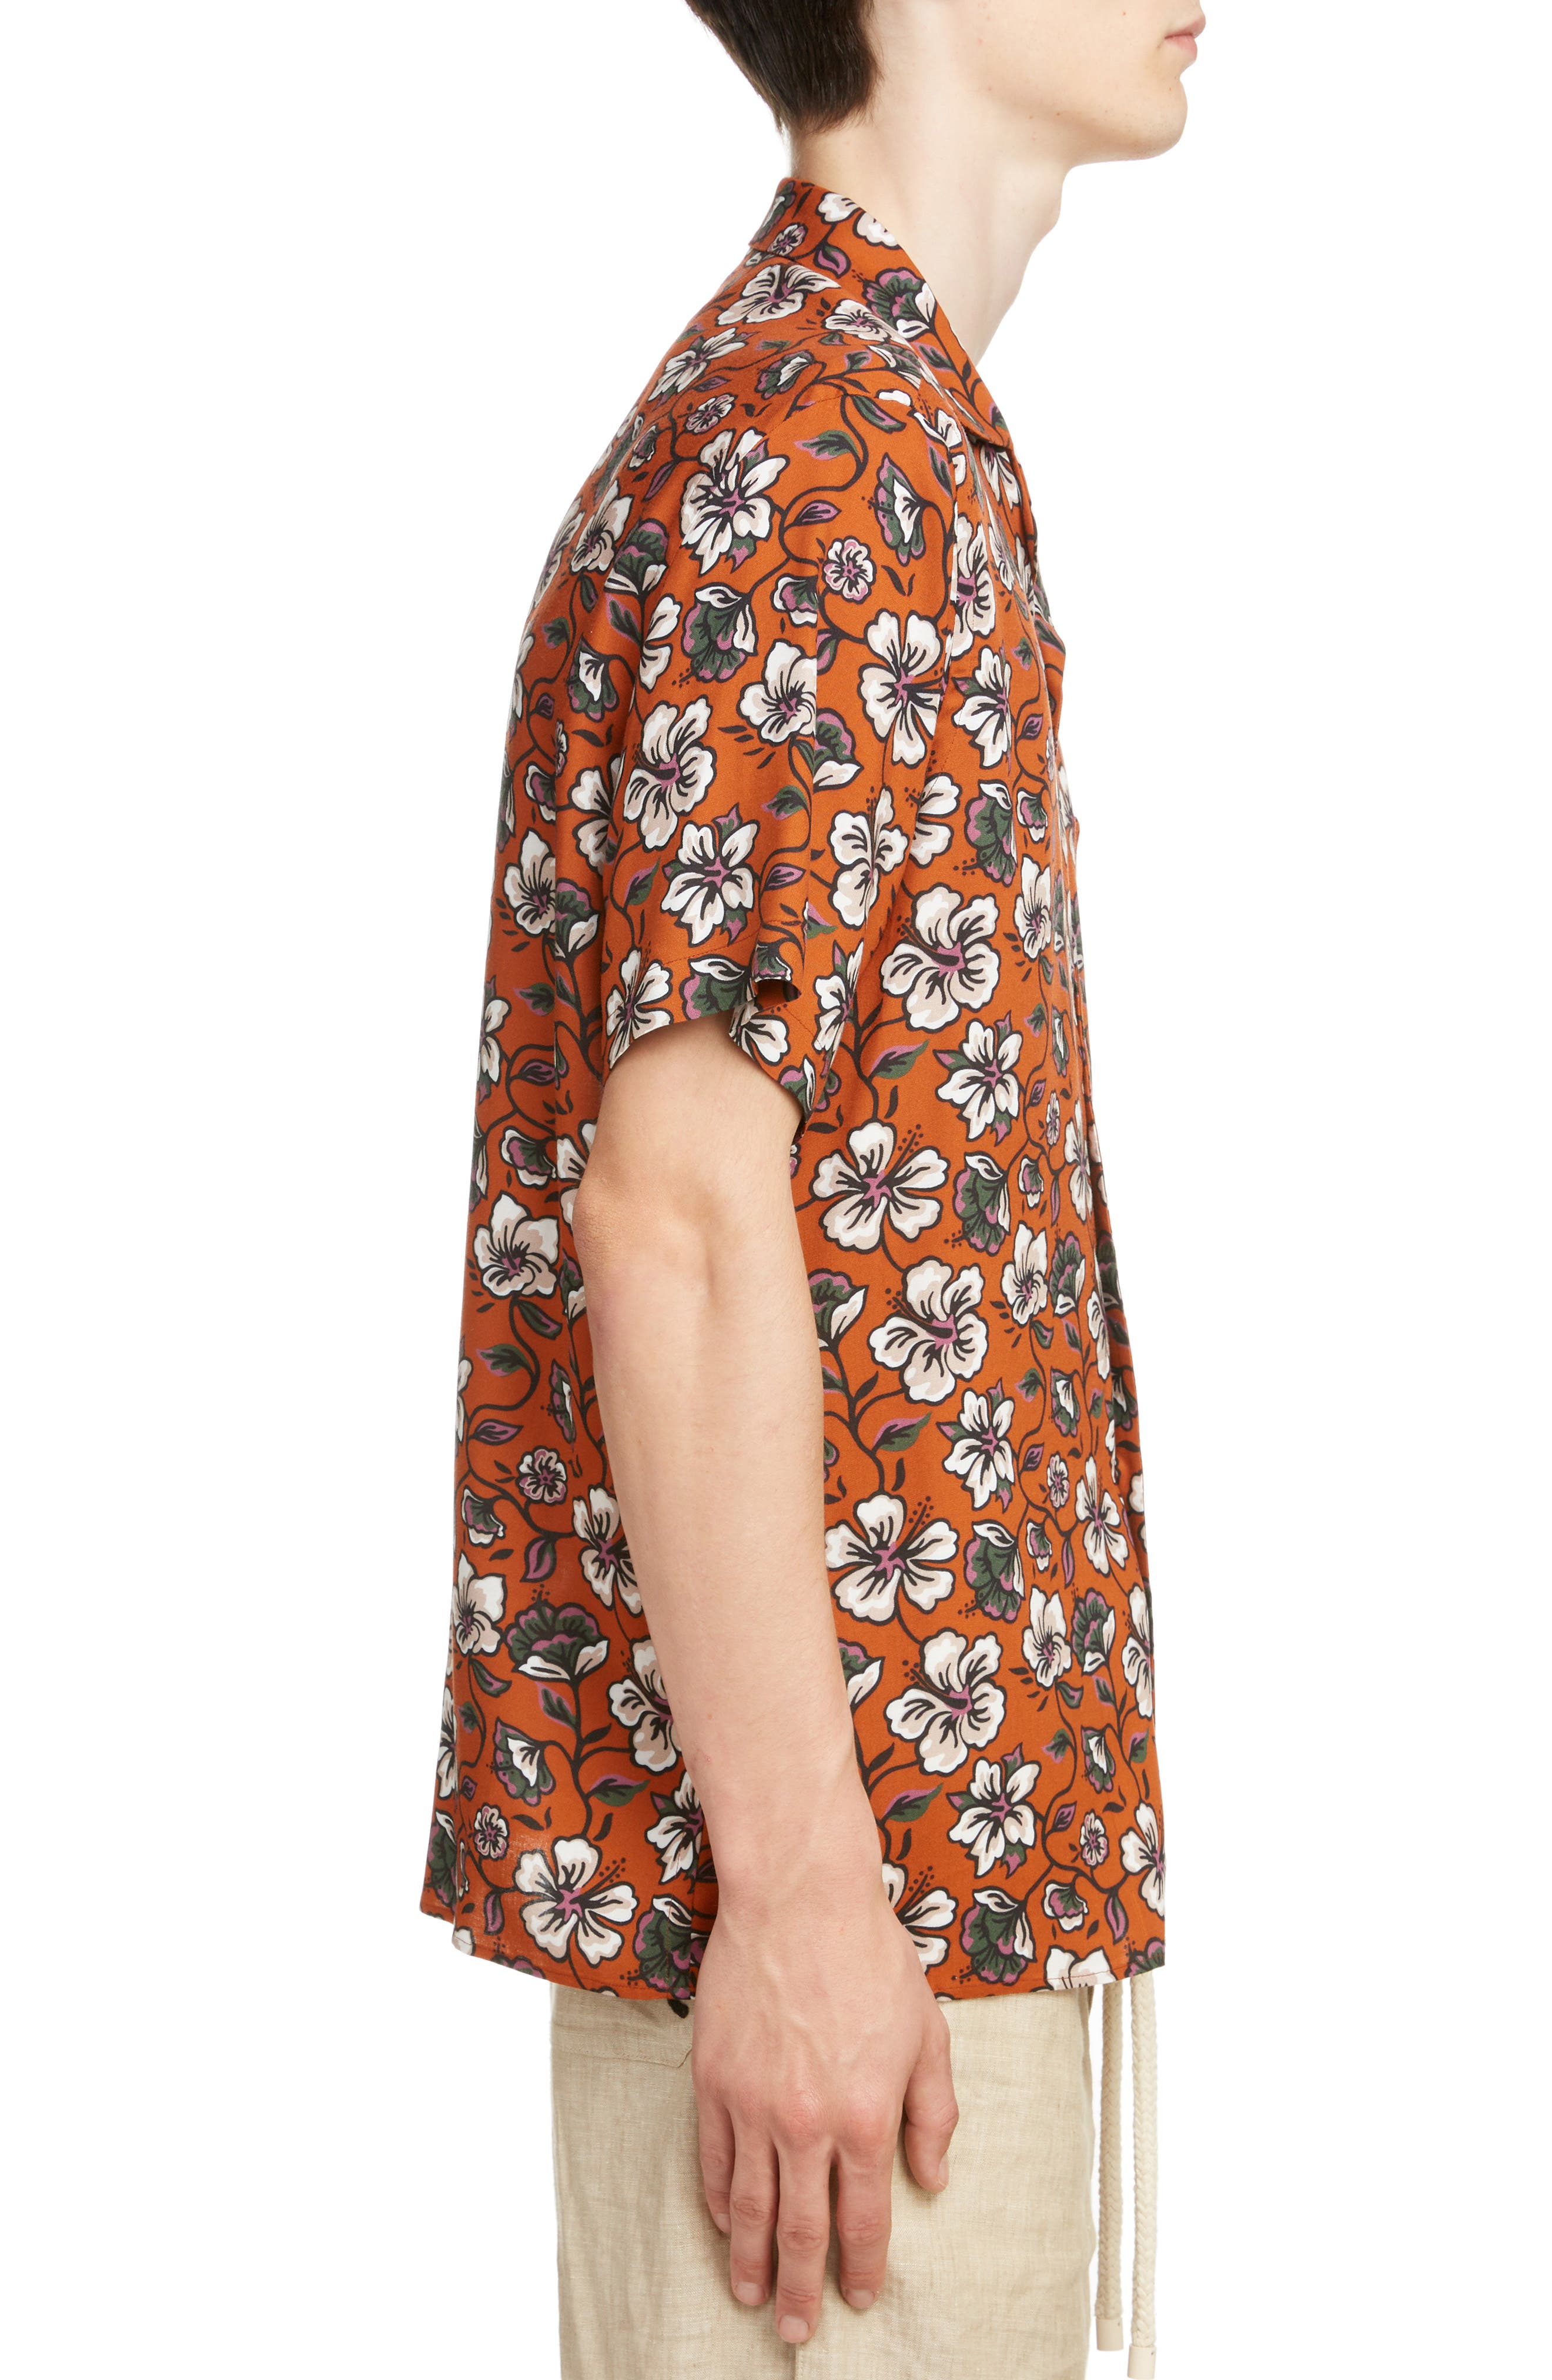 LOEWE, Floral Print Camp Shirt, Alternate thumbnail 4, color, 2103-WHITE/ BROWN